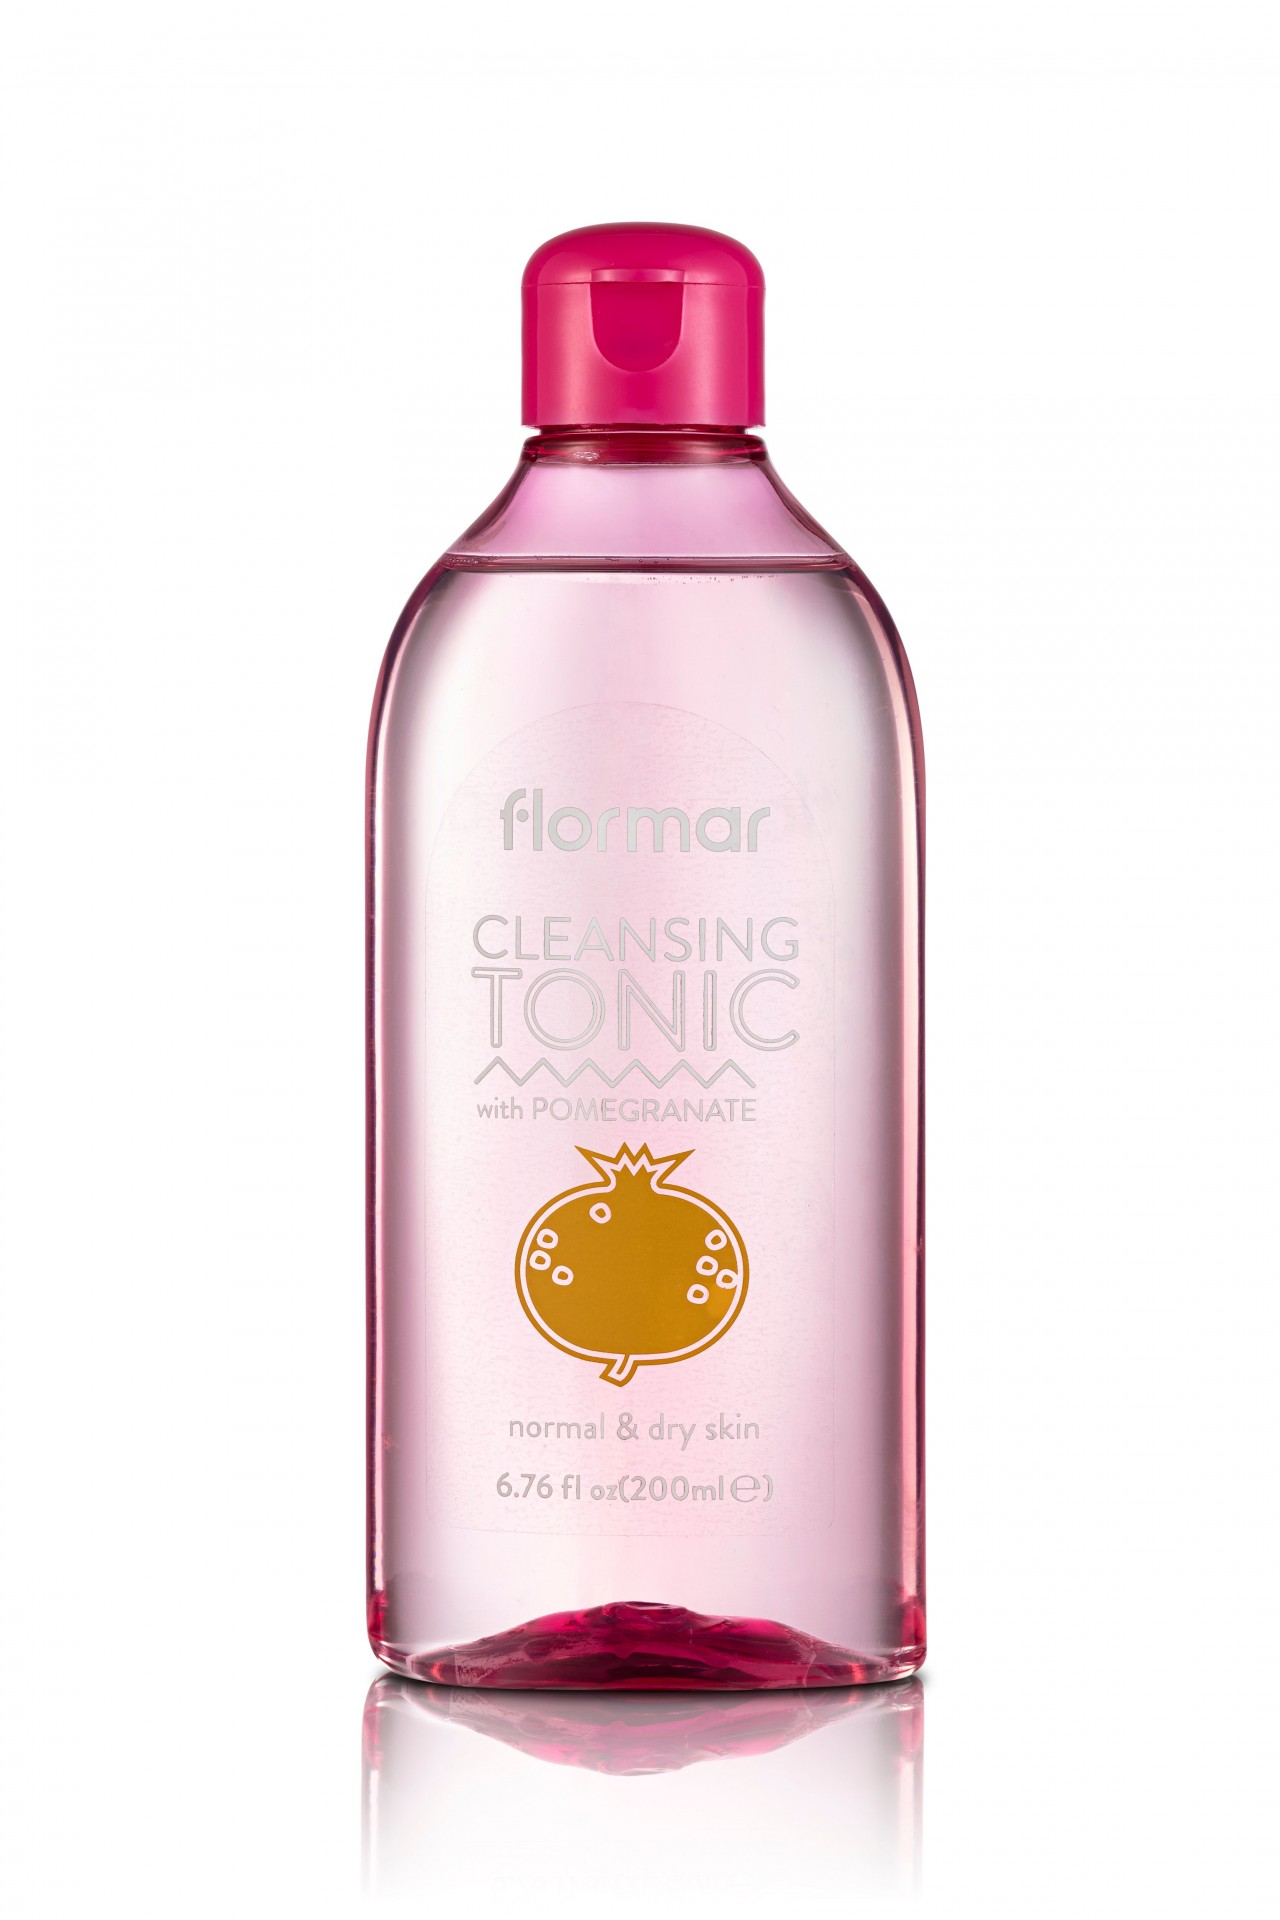 FLORMAR - CLEANSING TONIC - POMEGRANATE